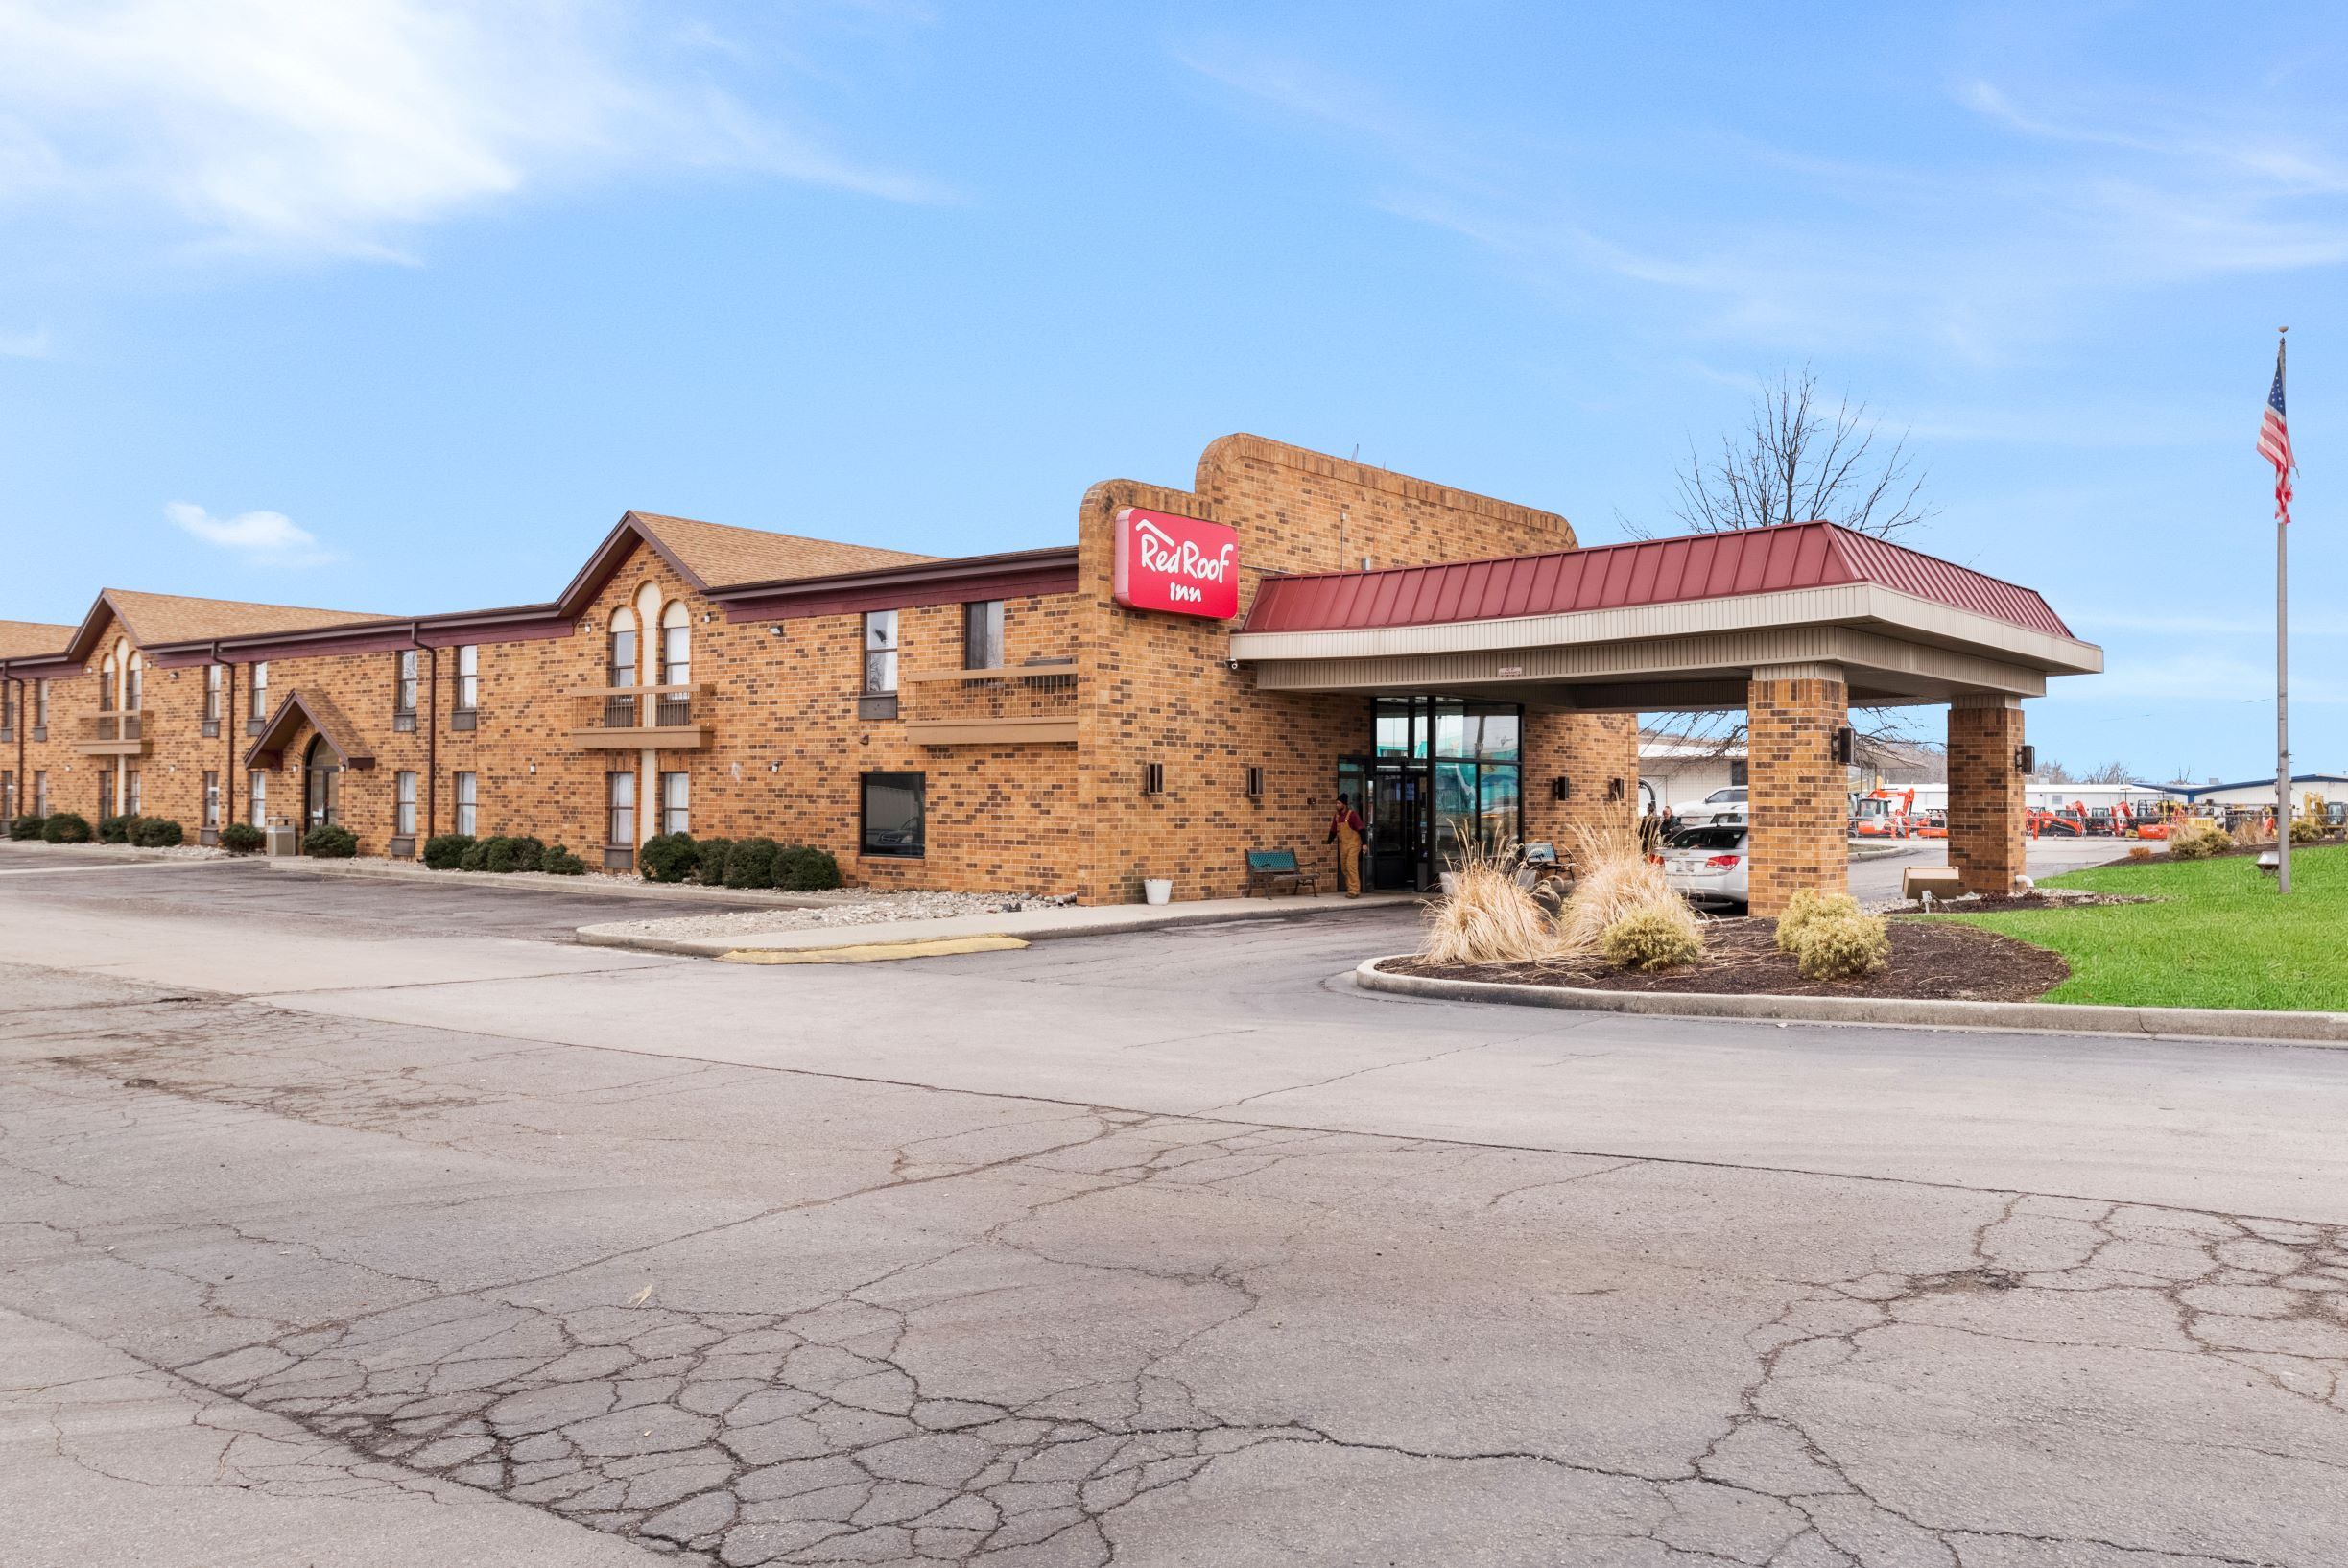 http://www.memorialcoliseum.com/images/Images/Where_to_Stay_Images/Red_Roof_Inn/RRI0339_Exterior_1-2.jpg